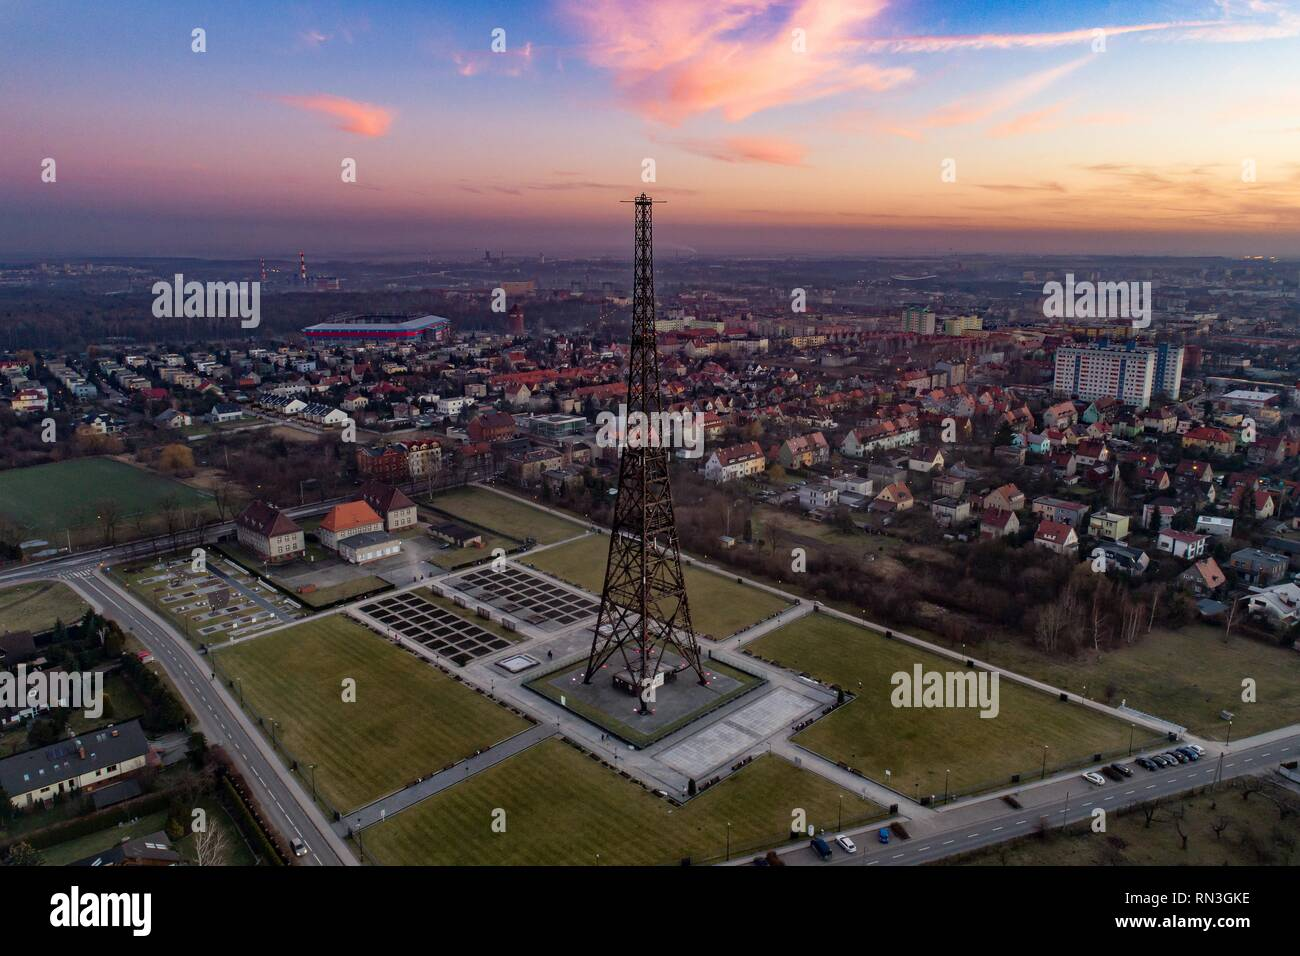 Wooden radio tower in Gliwice, Silesia, Poland. The tower is the tallest wooden structure in Europe - Stock Image